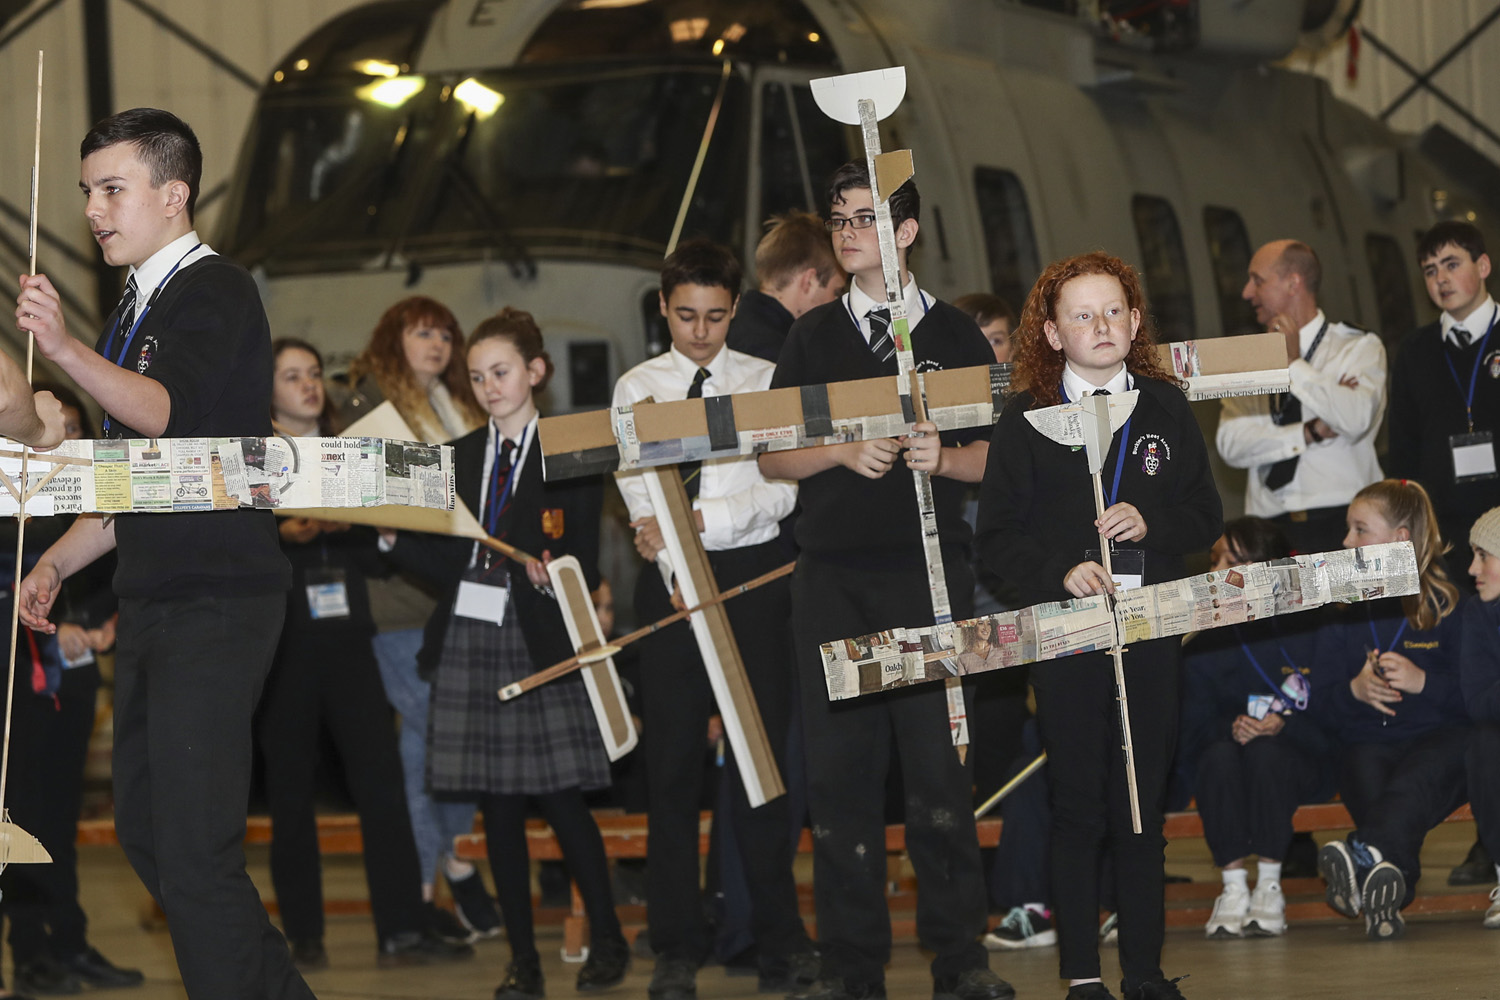 Students are off to a Flying Start the inspirational student engineering challenge held at Royal Naval Air Station.